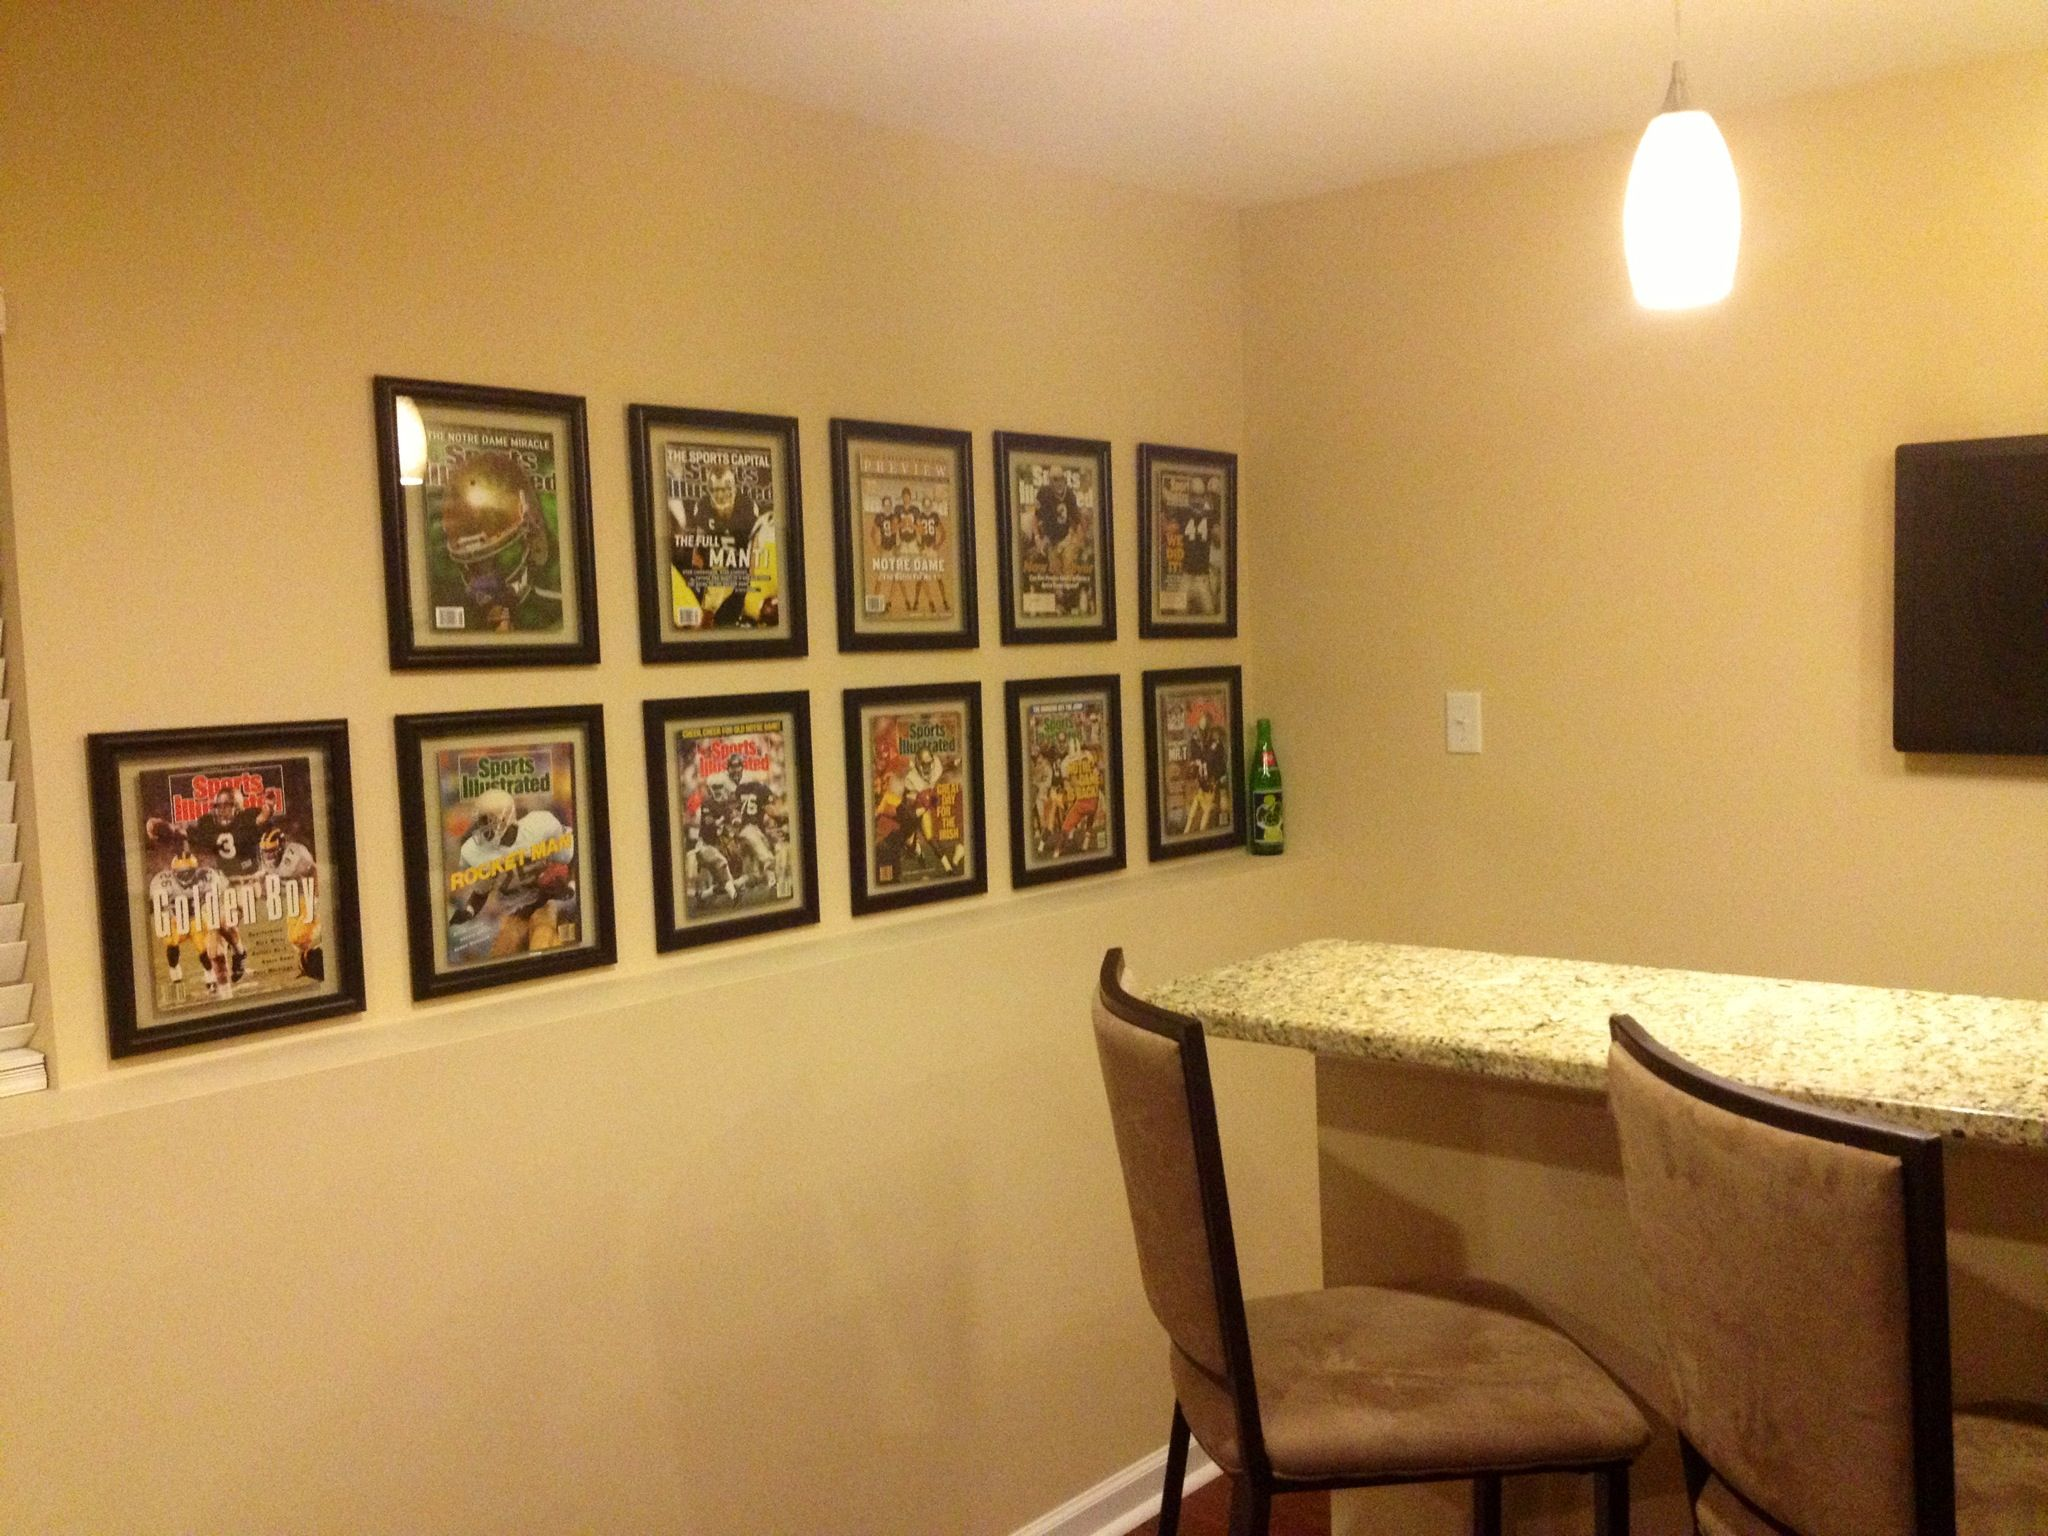 Notre Dame Man Cave Ideas : Notre dame fighting irish mancave sports illustrated in